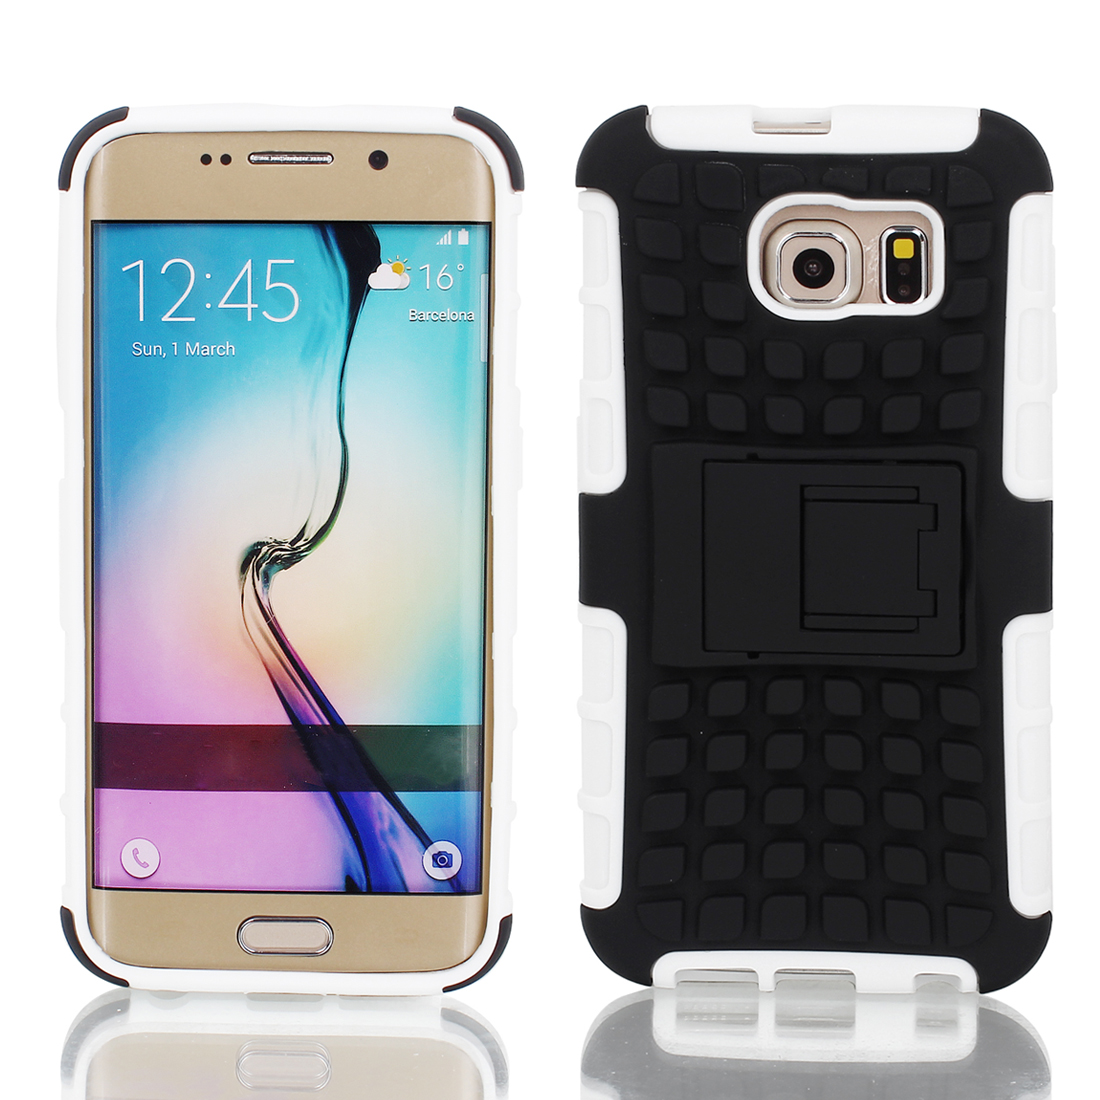 Shockproof Tough Rugged Hard Stand Case Cover White Black for Galaxy S6